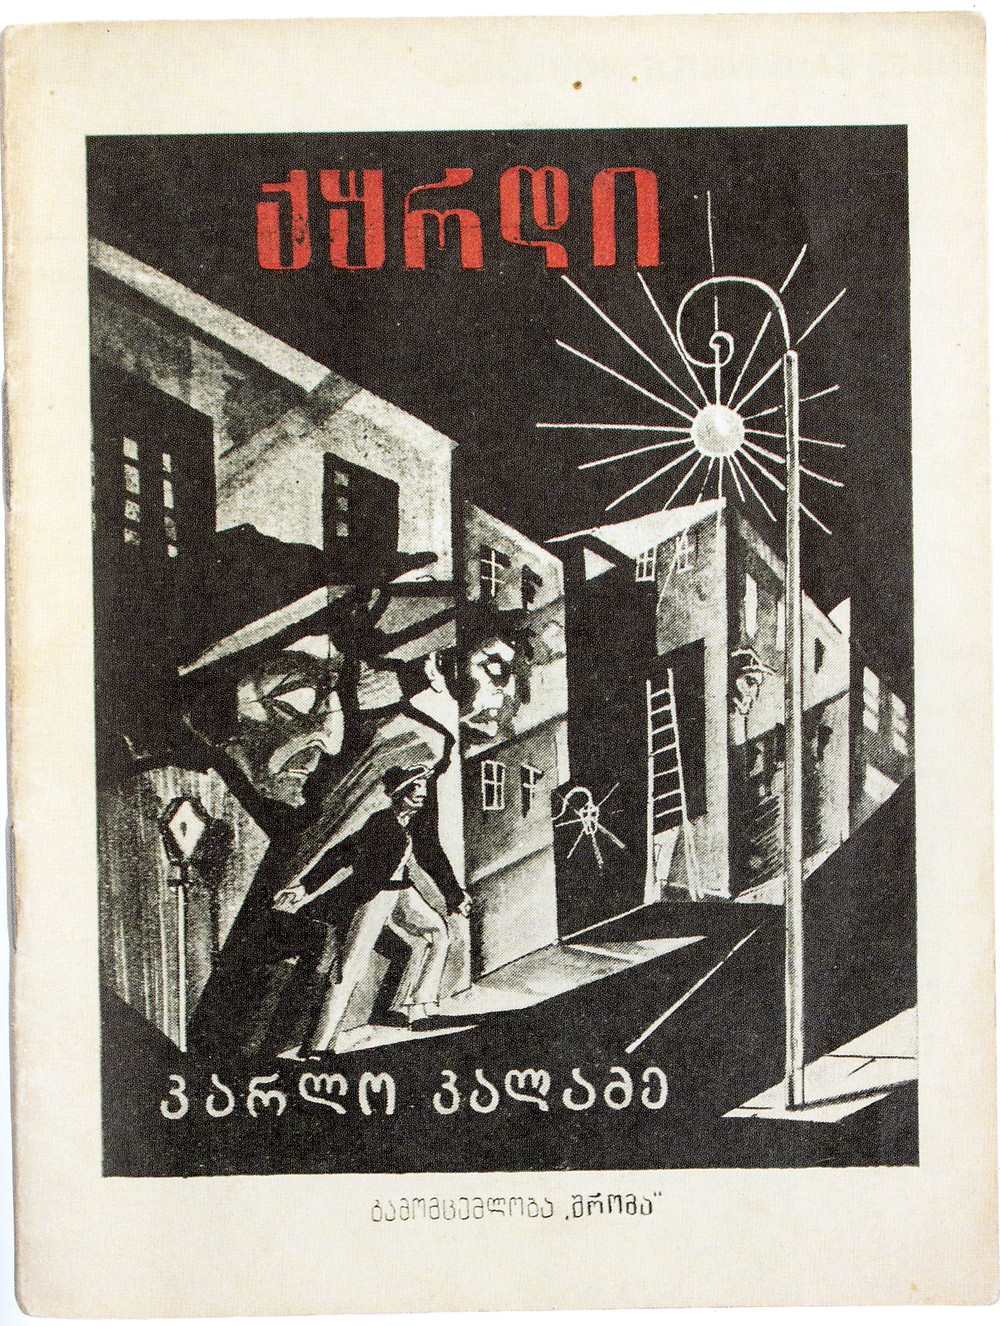 Cover illustration by Irakli Gamrekeli, 1927.